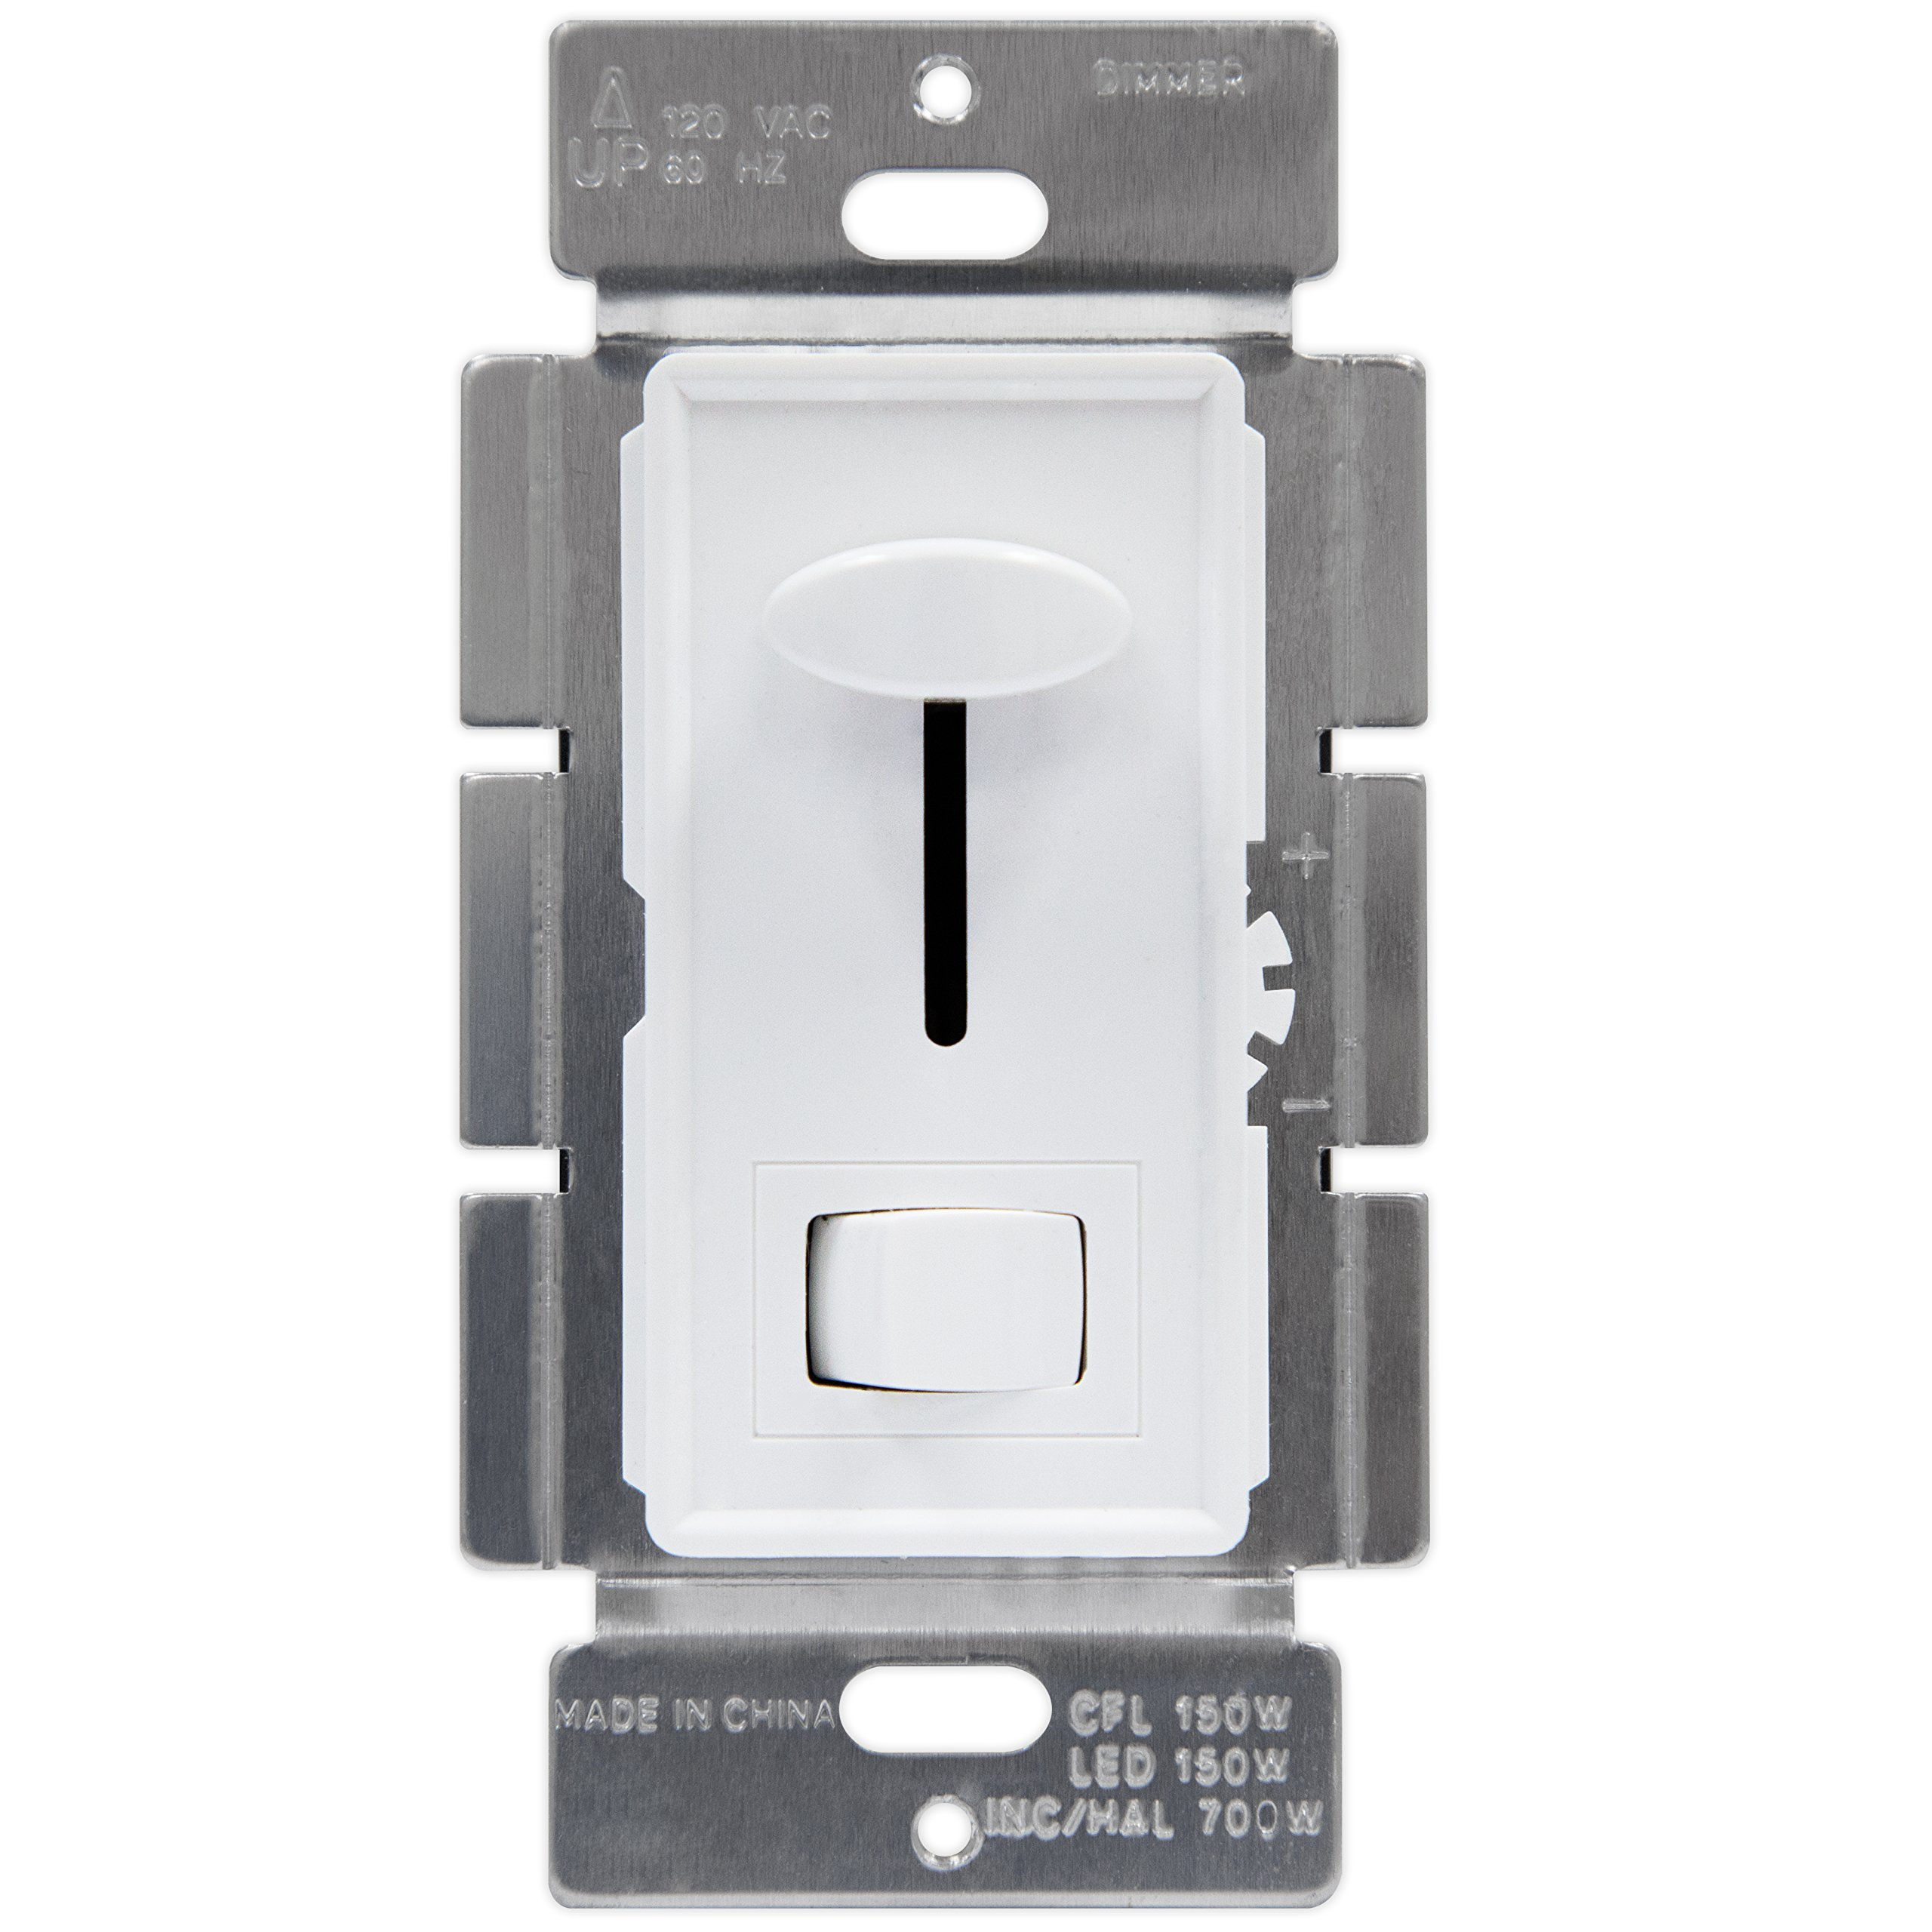 Enerlites 59302 LED Dimmer Switch 3-Way for Dimmable LED/CFL/Incandescent/Halogen, Single Pole - White